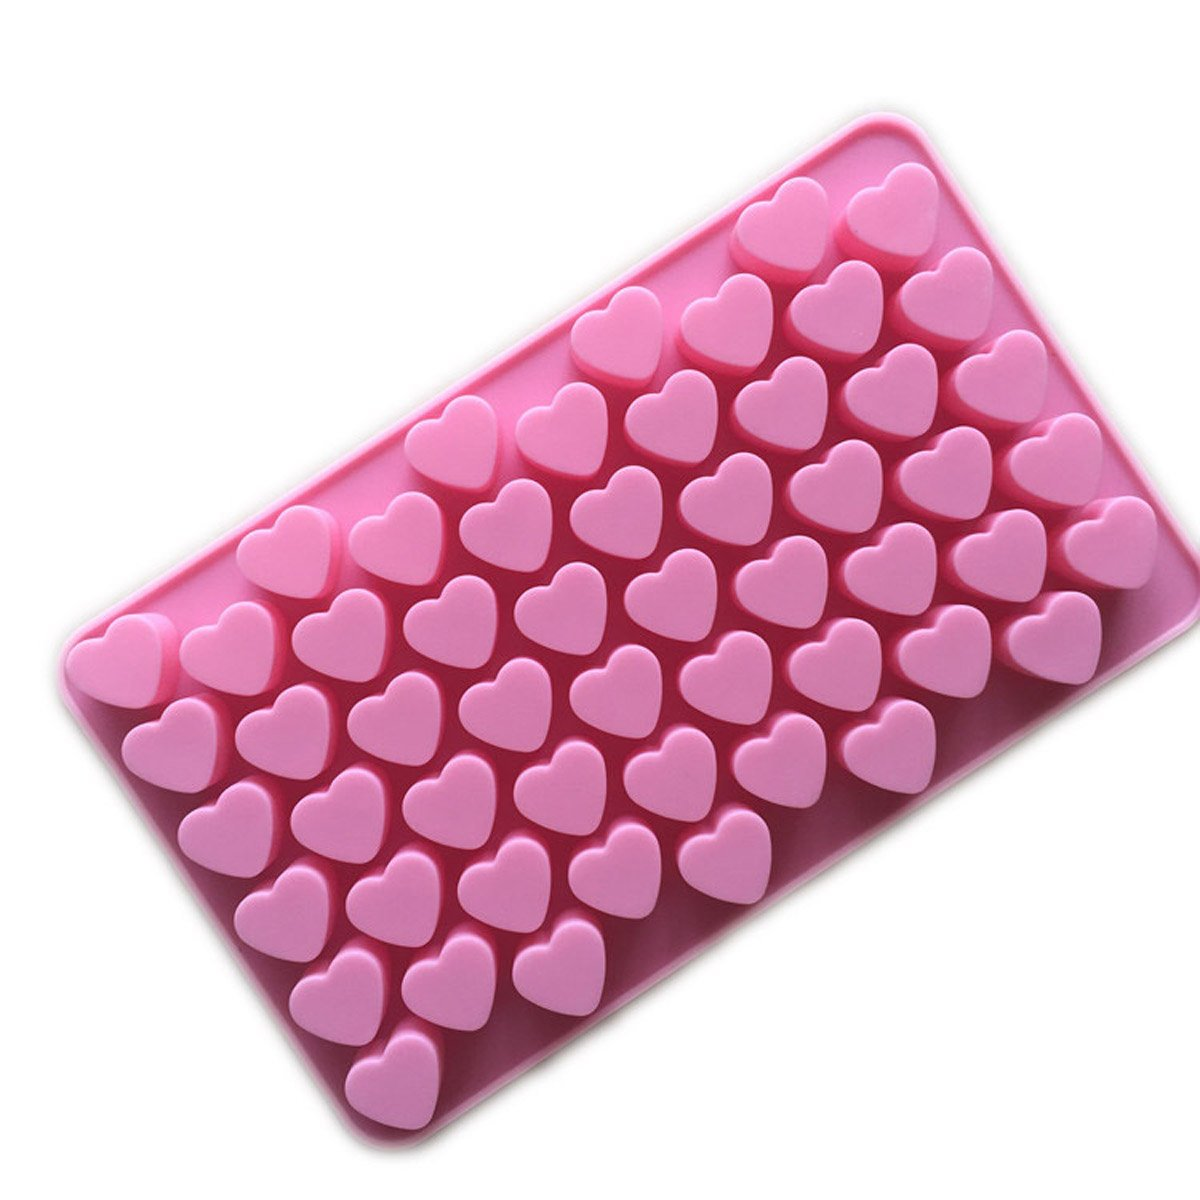 Xcellent Silicone mold Mini Heart Shape Silicone Ice Cube/Chocolate Mold Pink Longzang P-HG011